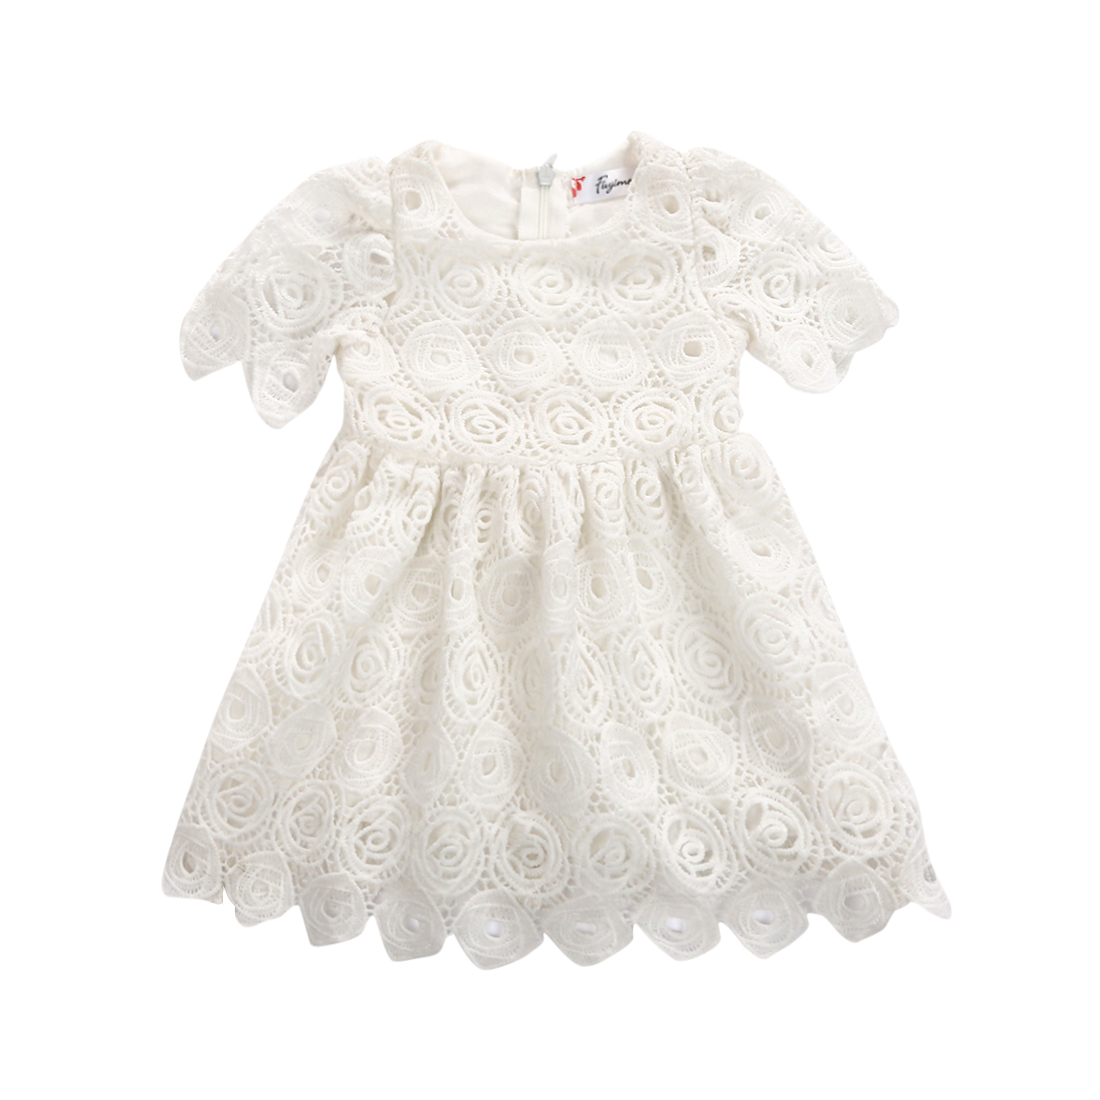 Infant Toddler Baby Girls White Lace Tutu Dress Floral Party Wedding Princess Dresses Easter Costumes for girls pudcoco baby girls dress toddler girls backless lace bow princess dresses tutu party wedding birthday dress for girls easter